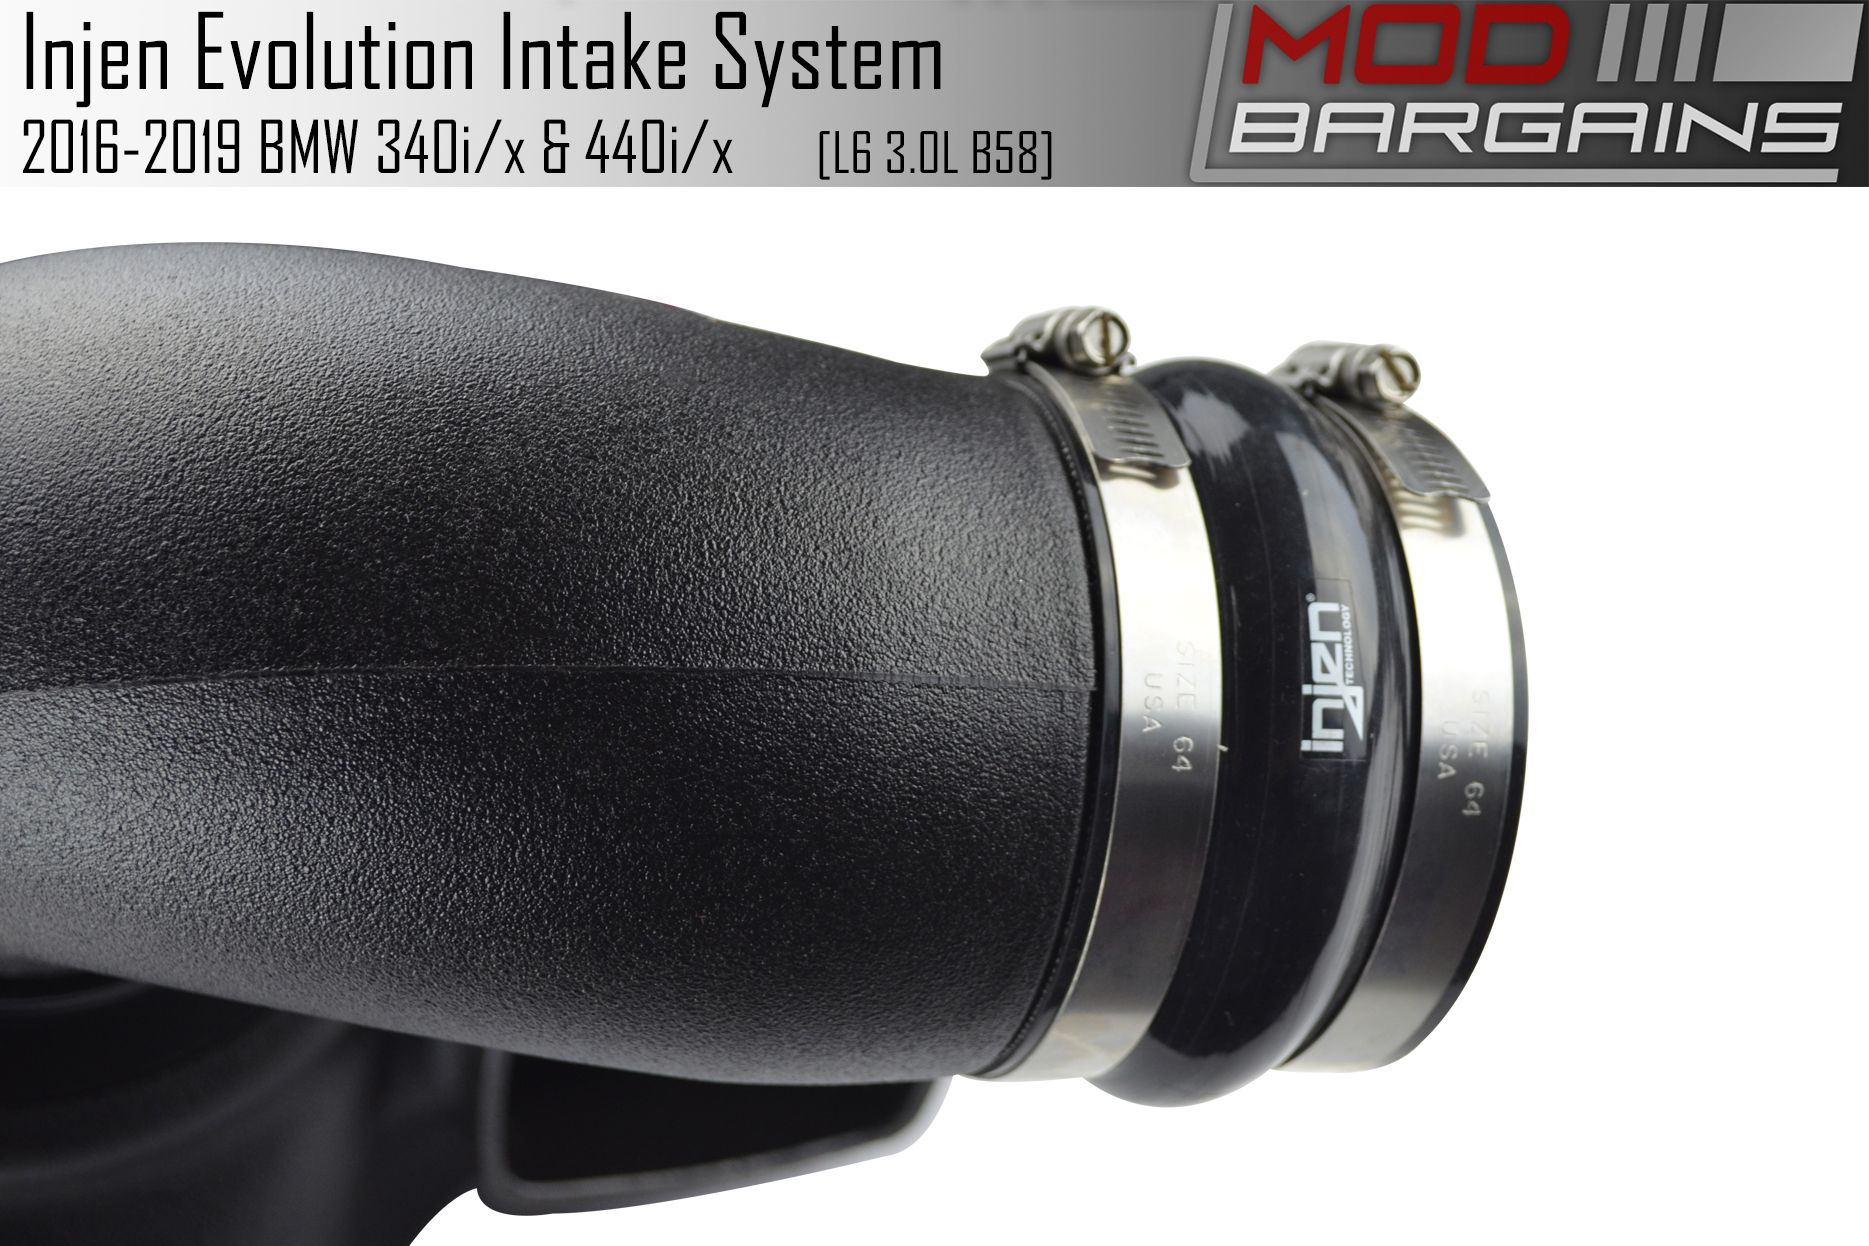 Injen Evolution Cold Air Intake for 2016-2019 BMW M240i, 340i and 440i with B458 3.0T Engine